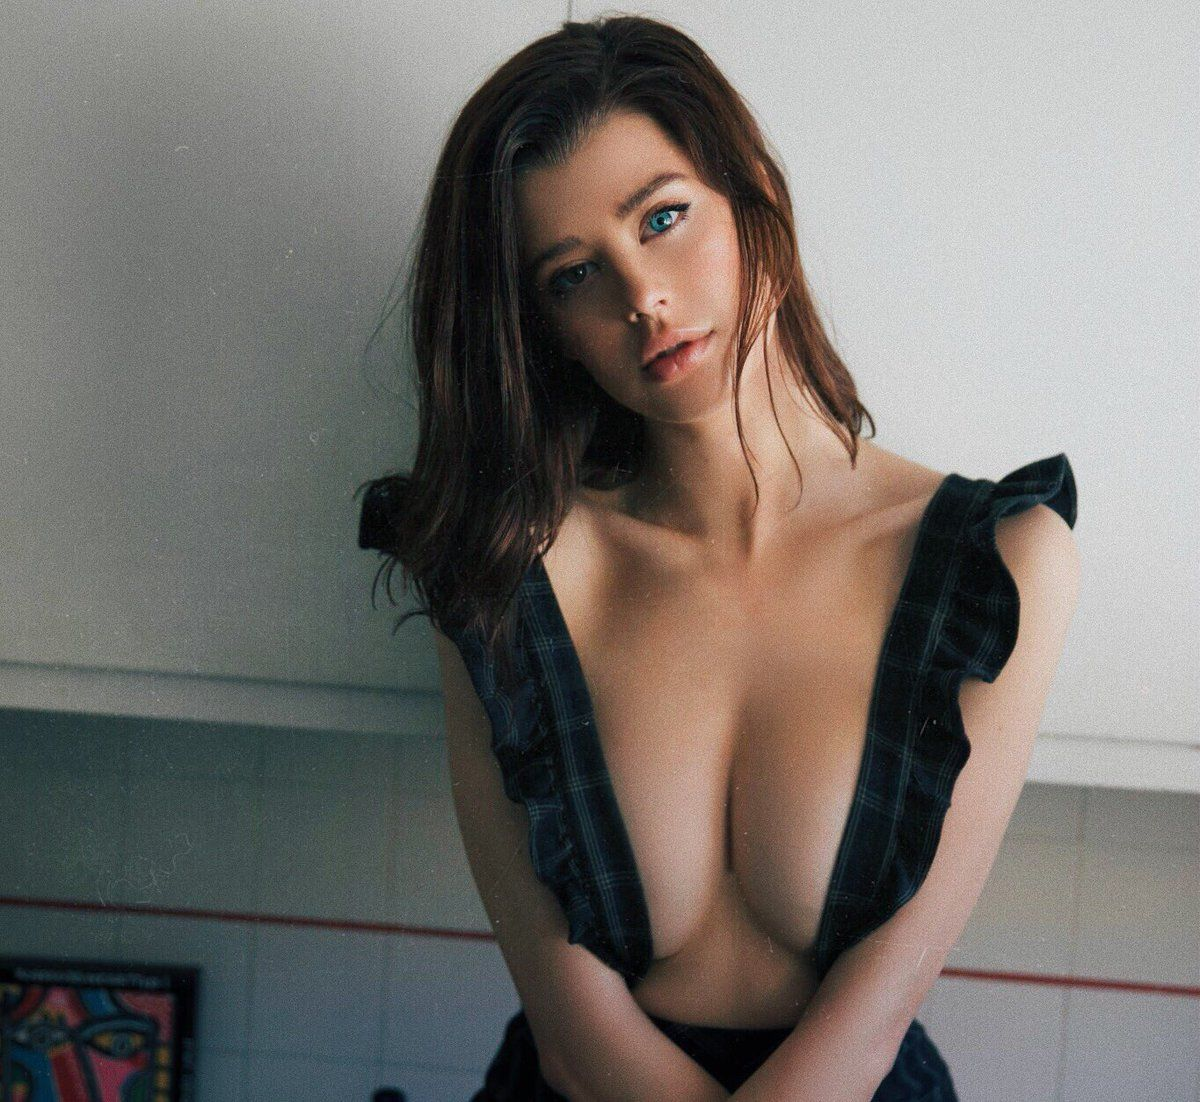 Celebrity Sarah McDaniel nude (98 photo), Pussy, Leaked, Selfie, panties 2006